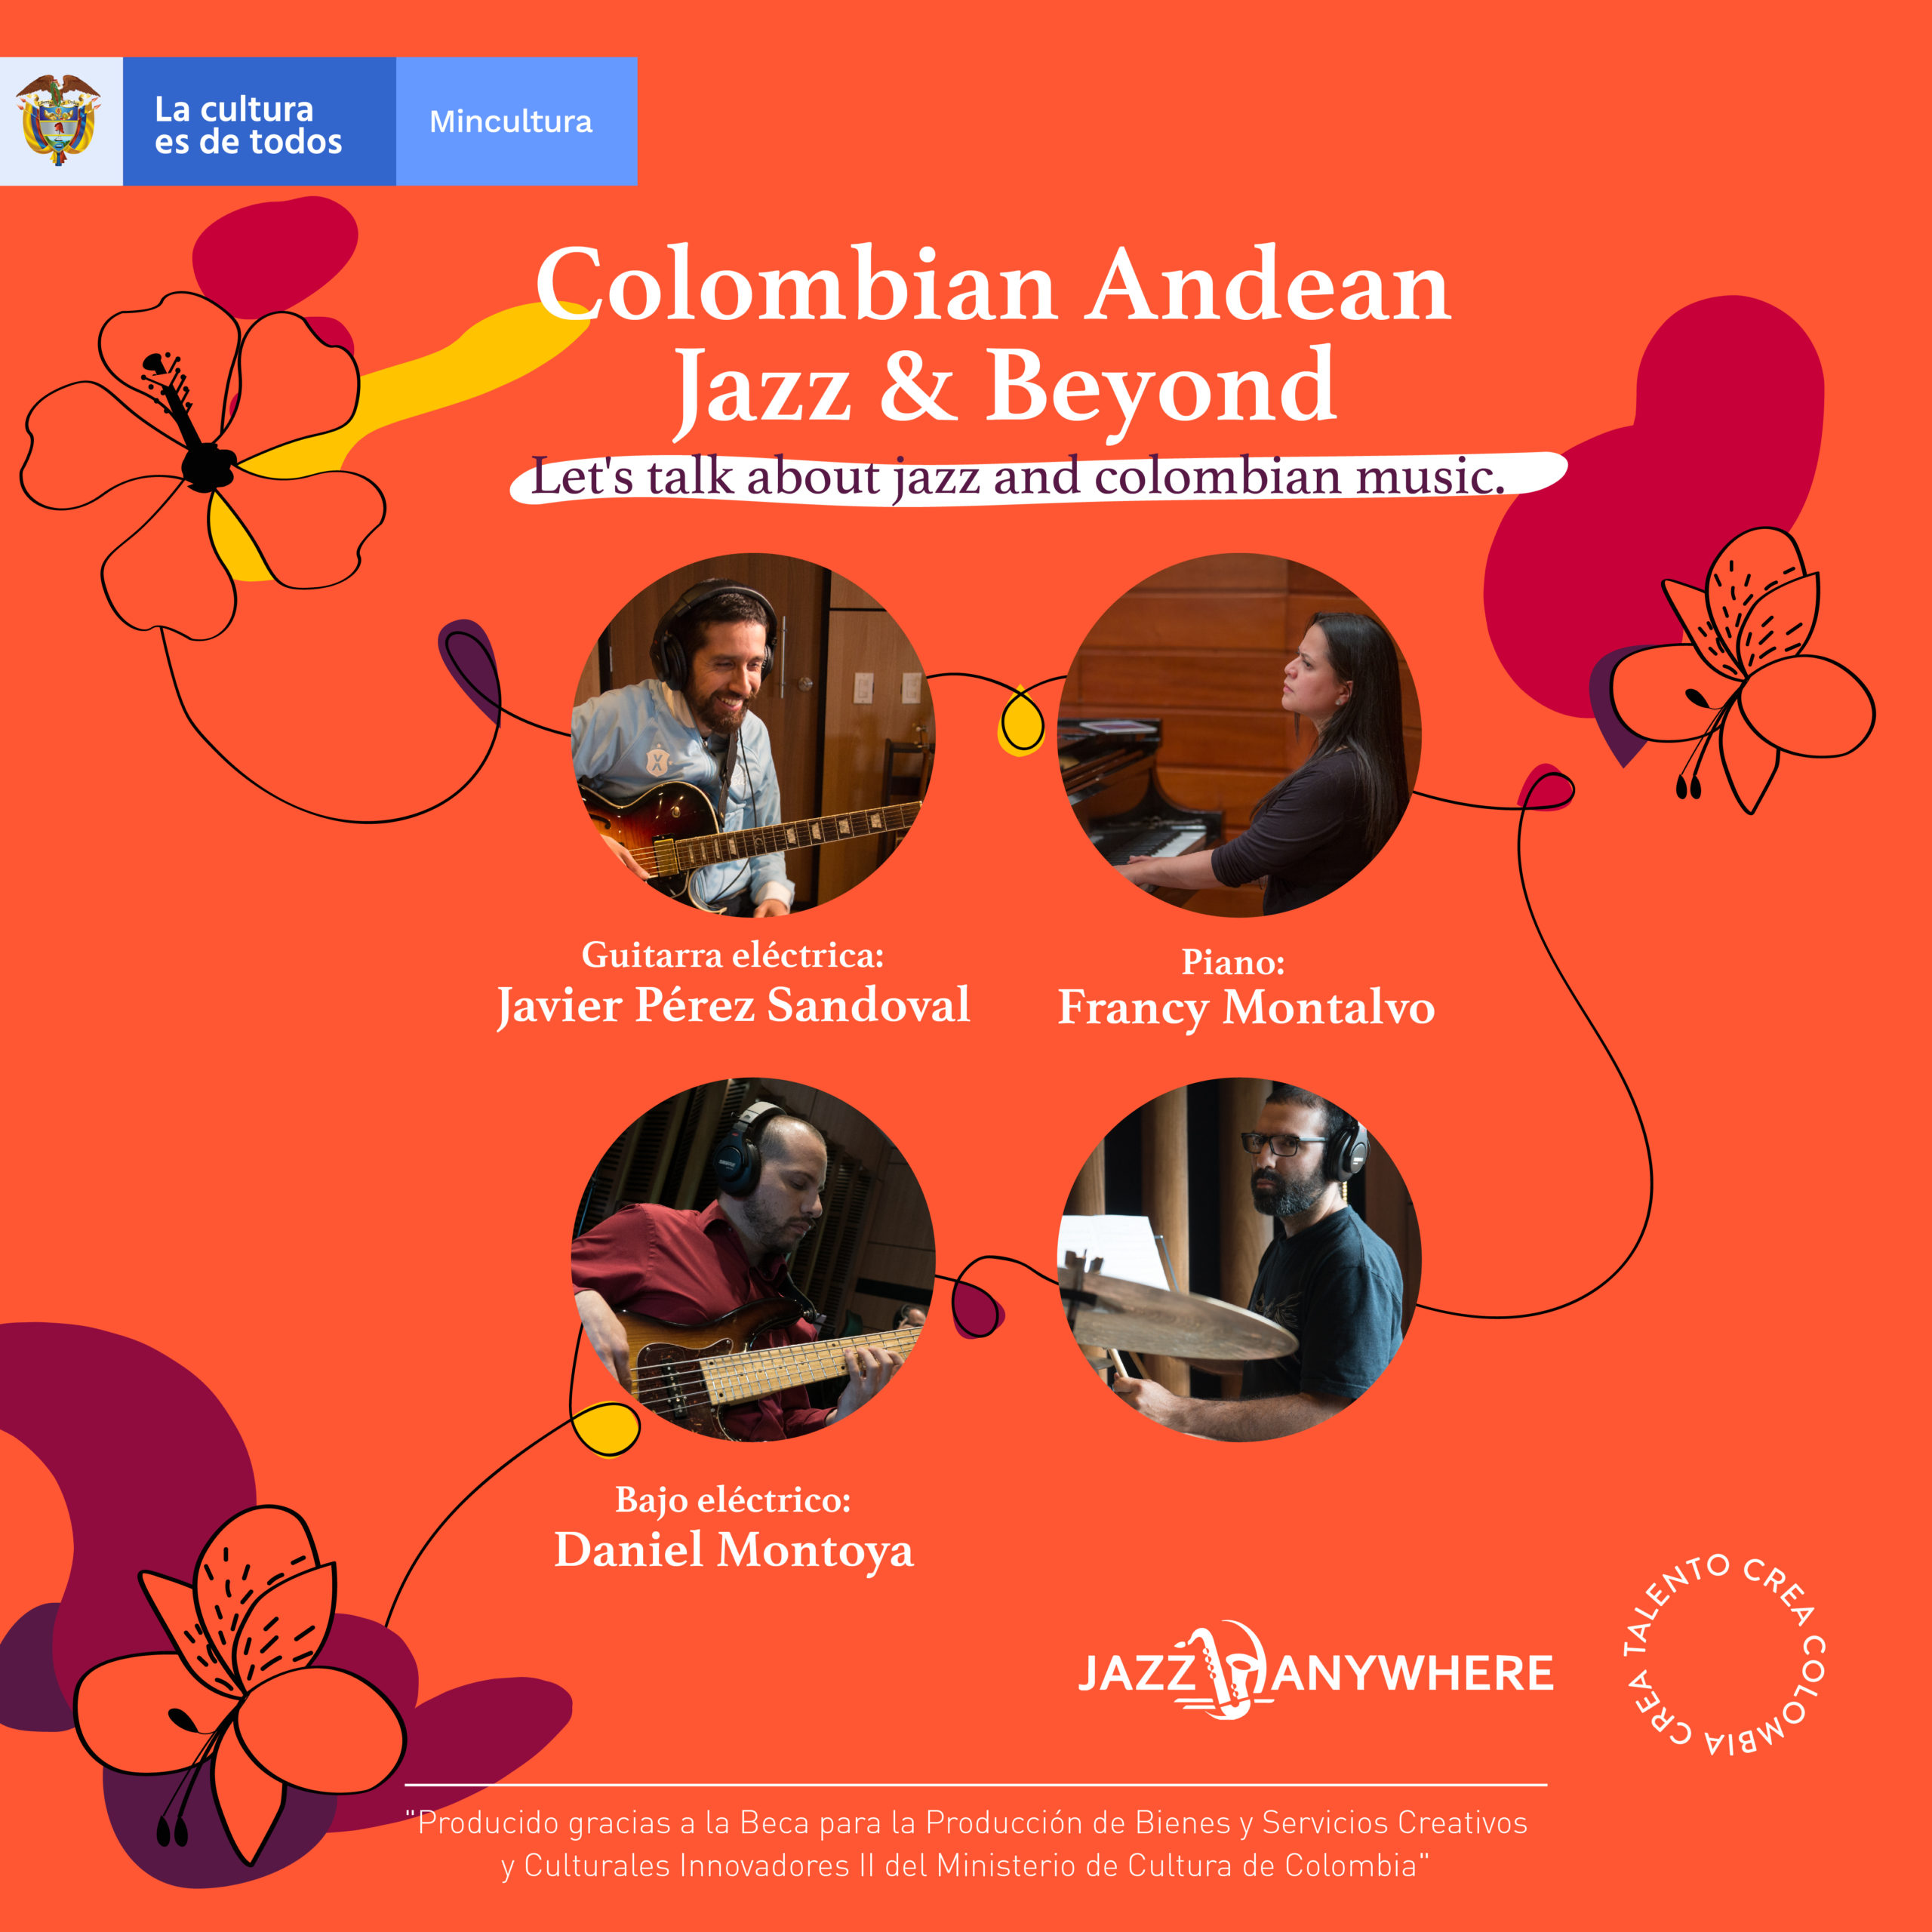 Colombian Andean Jazz & Beyond